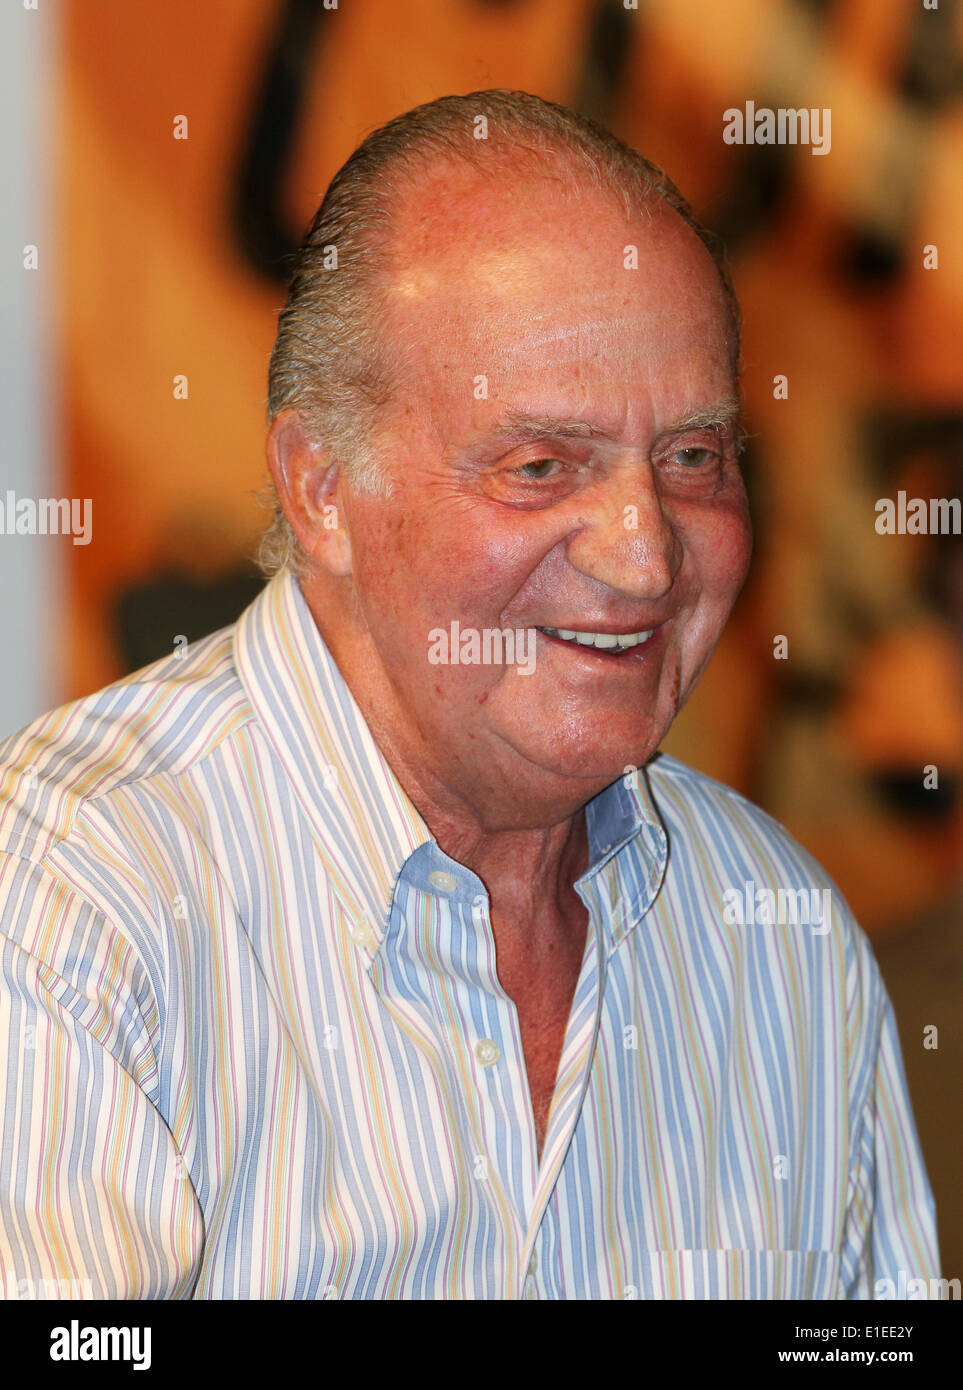 Spanish King Juan Carlos during the award ceremony of the 29th Copa del Rey sailing race, the 29th edition of the King's Cup (Copa del Rey) in Palma de Mallorca, Spain, 08 August, 2010. Photo: Patrick van Katwijk - Stock Image